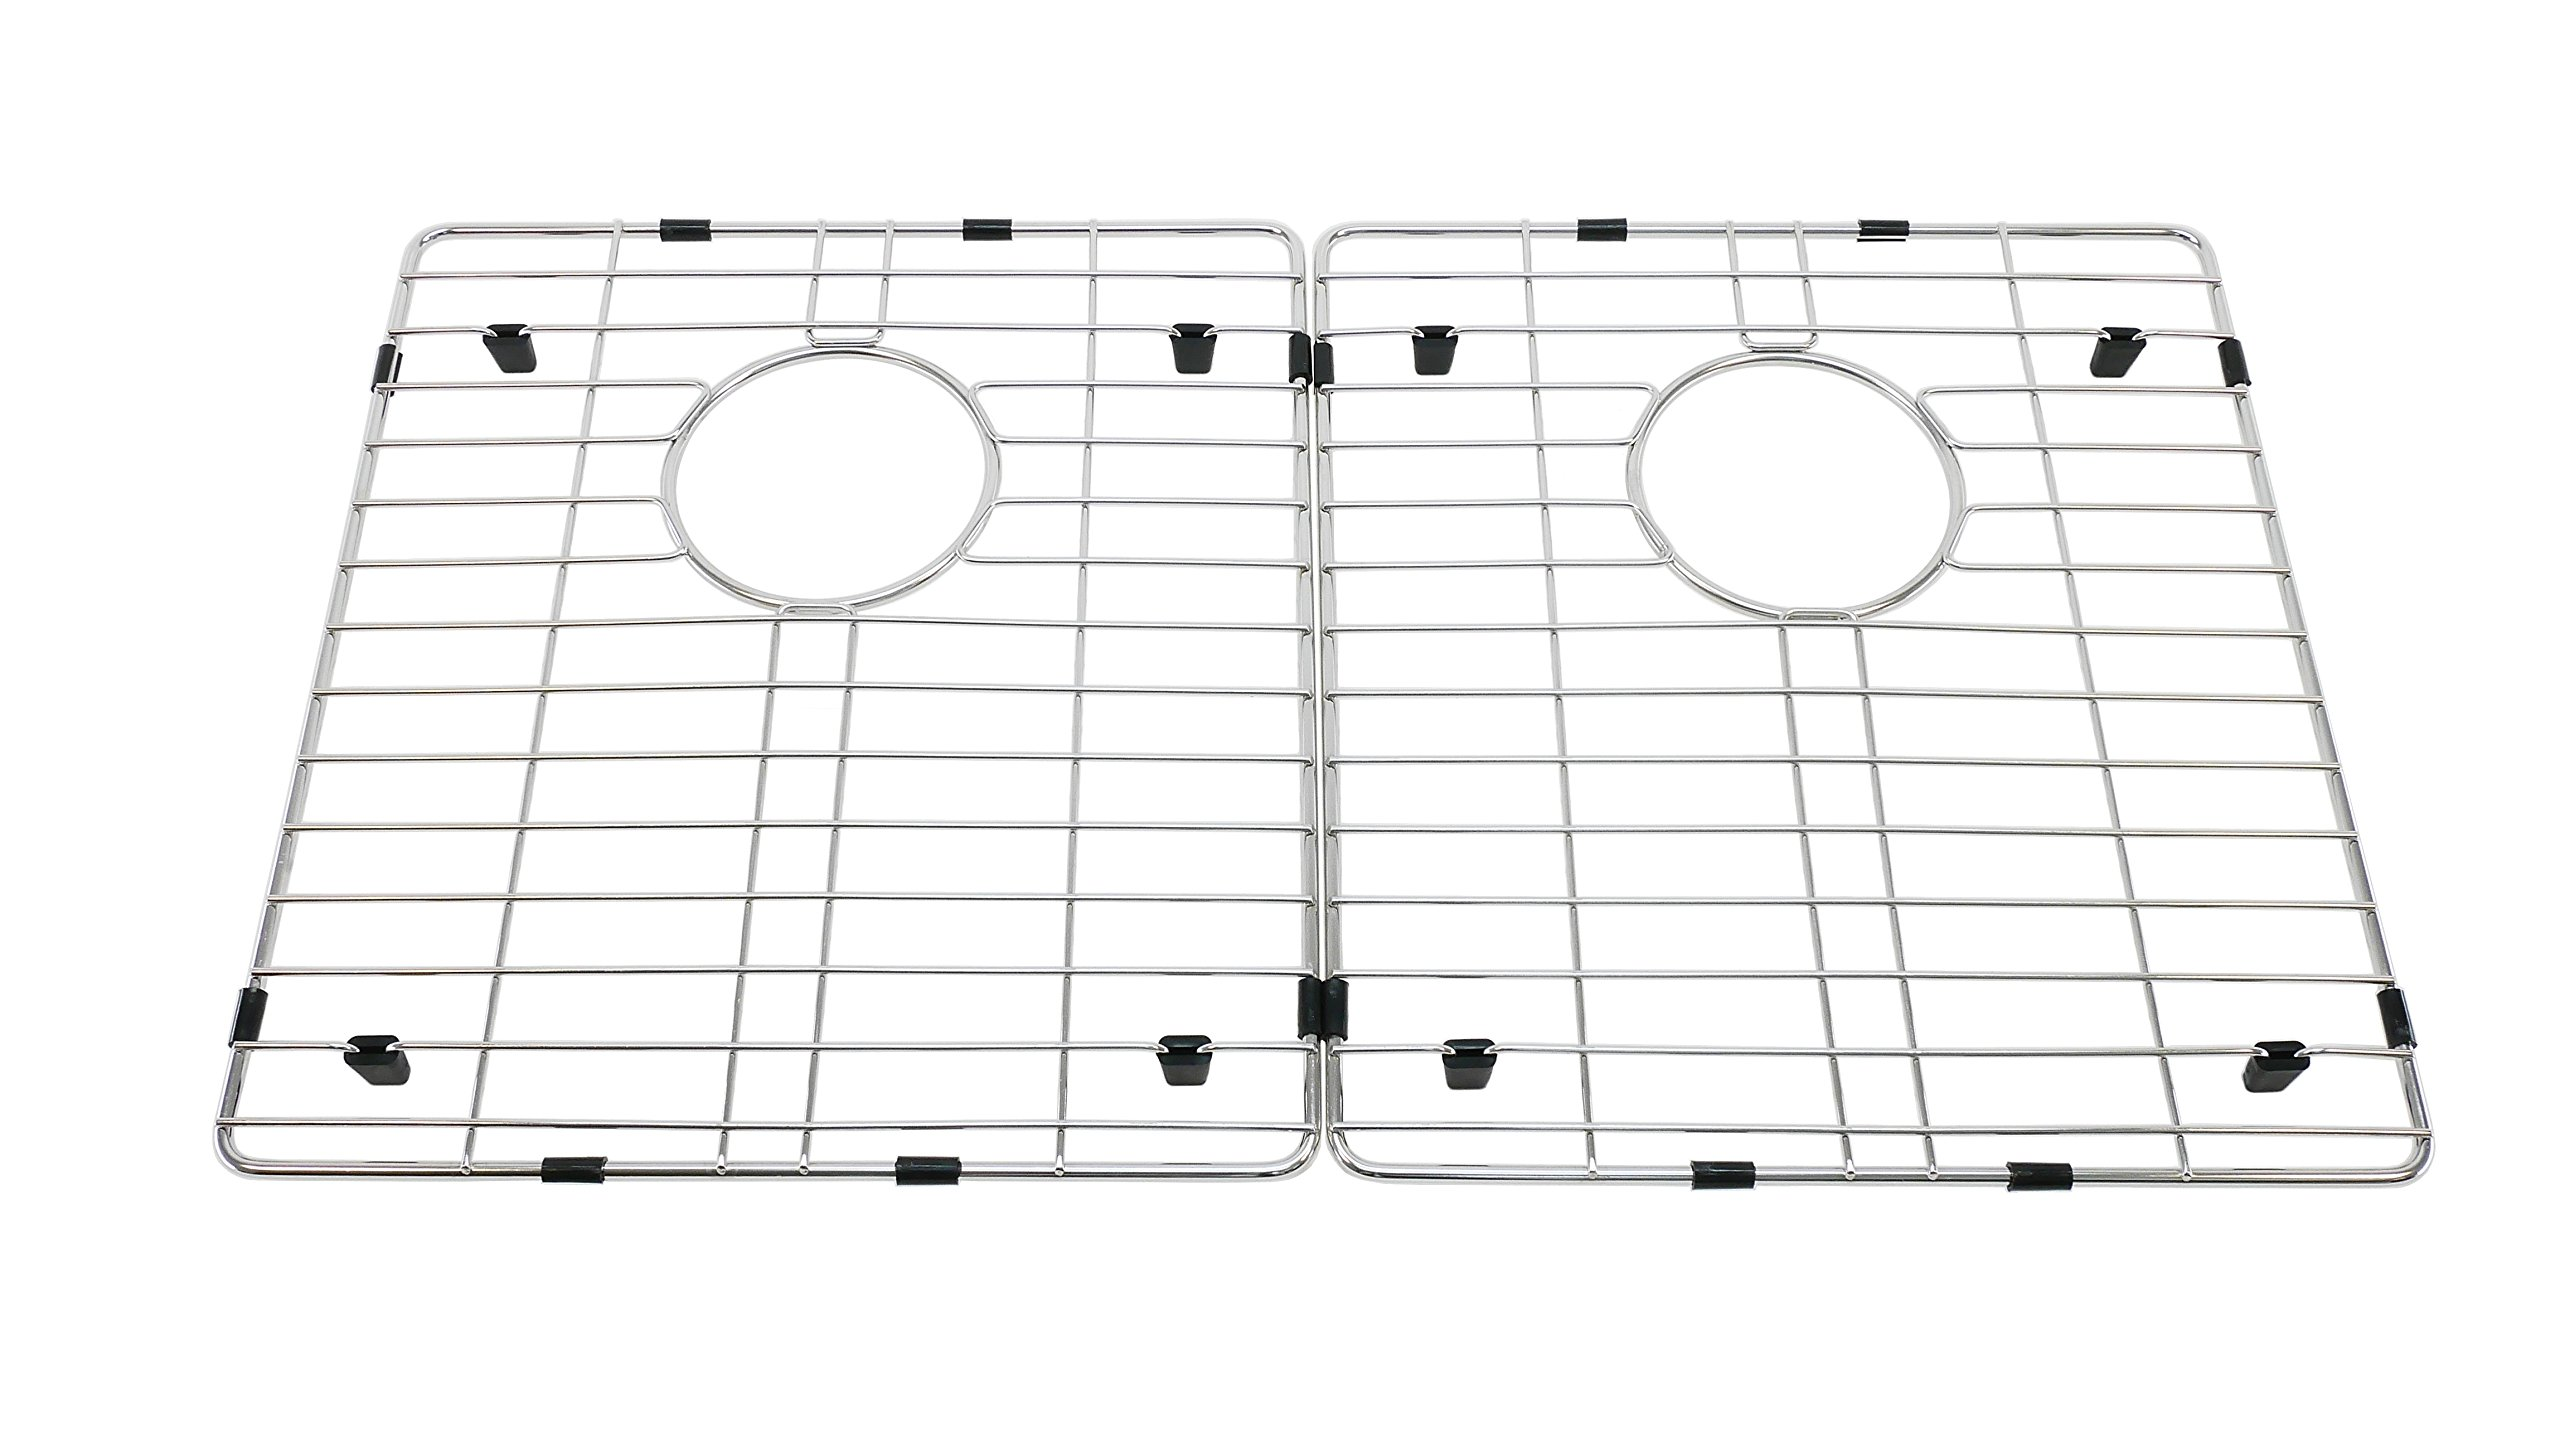 Auric Sink Grids for 33'' 5050 Double Bowl Sinks, BGFA-33-5050